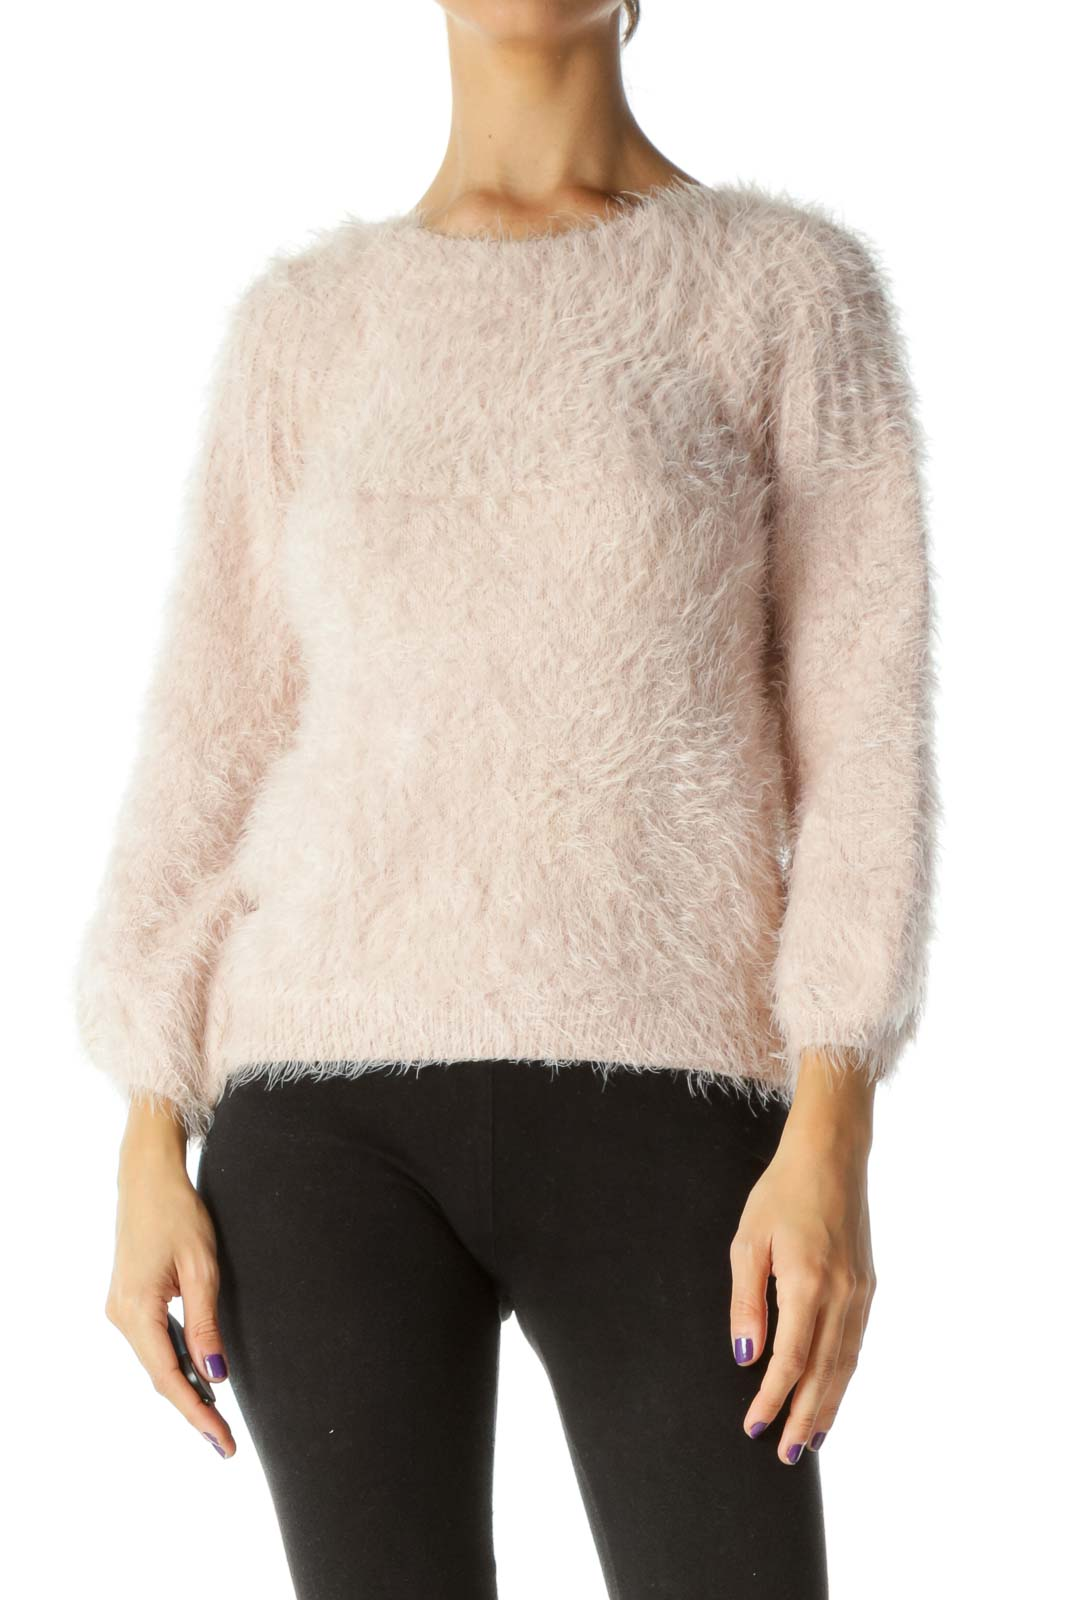 Pink Fluffy Soft Texture Long Sleeve Knit Sweater